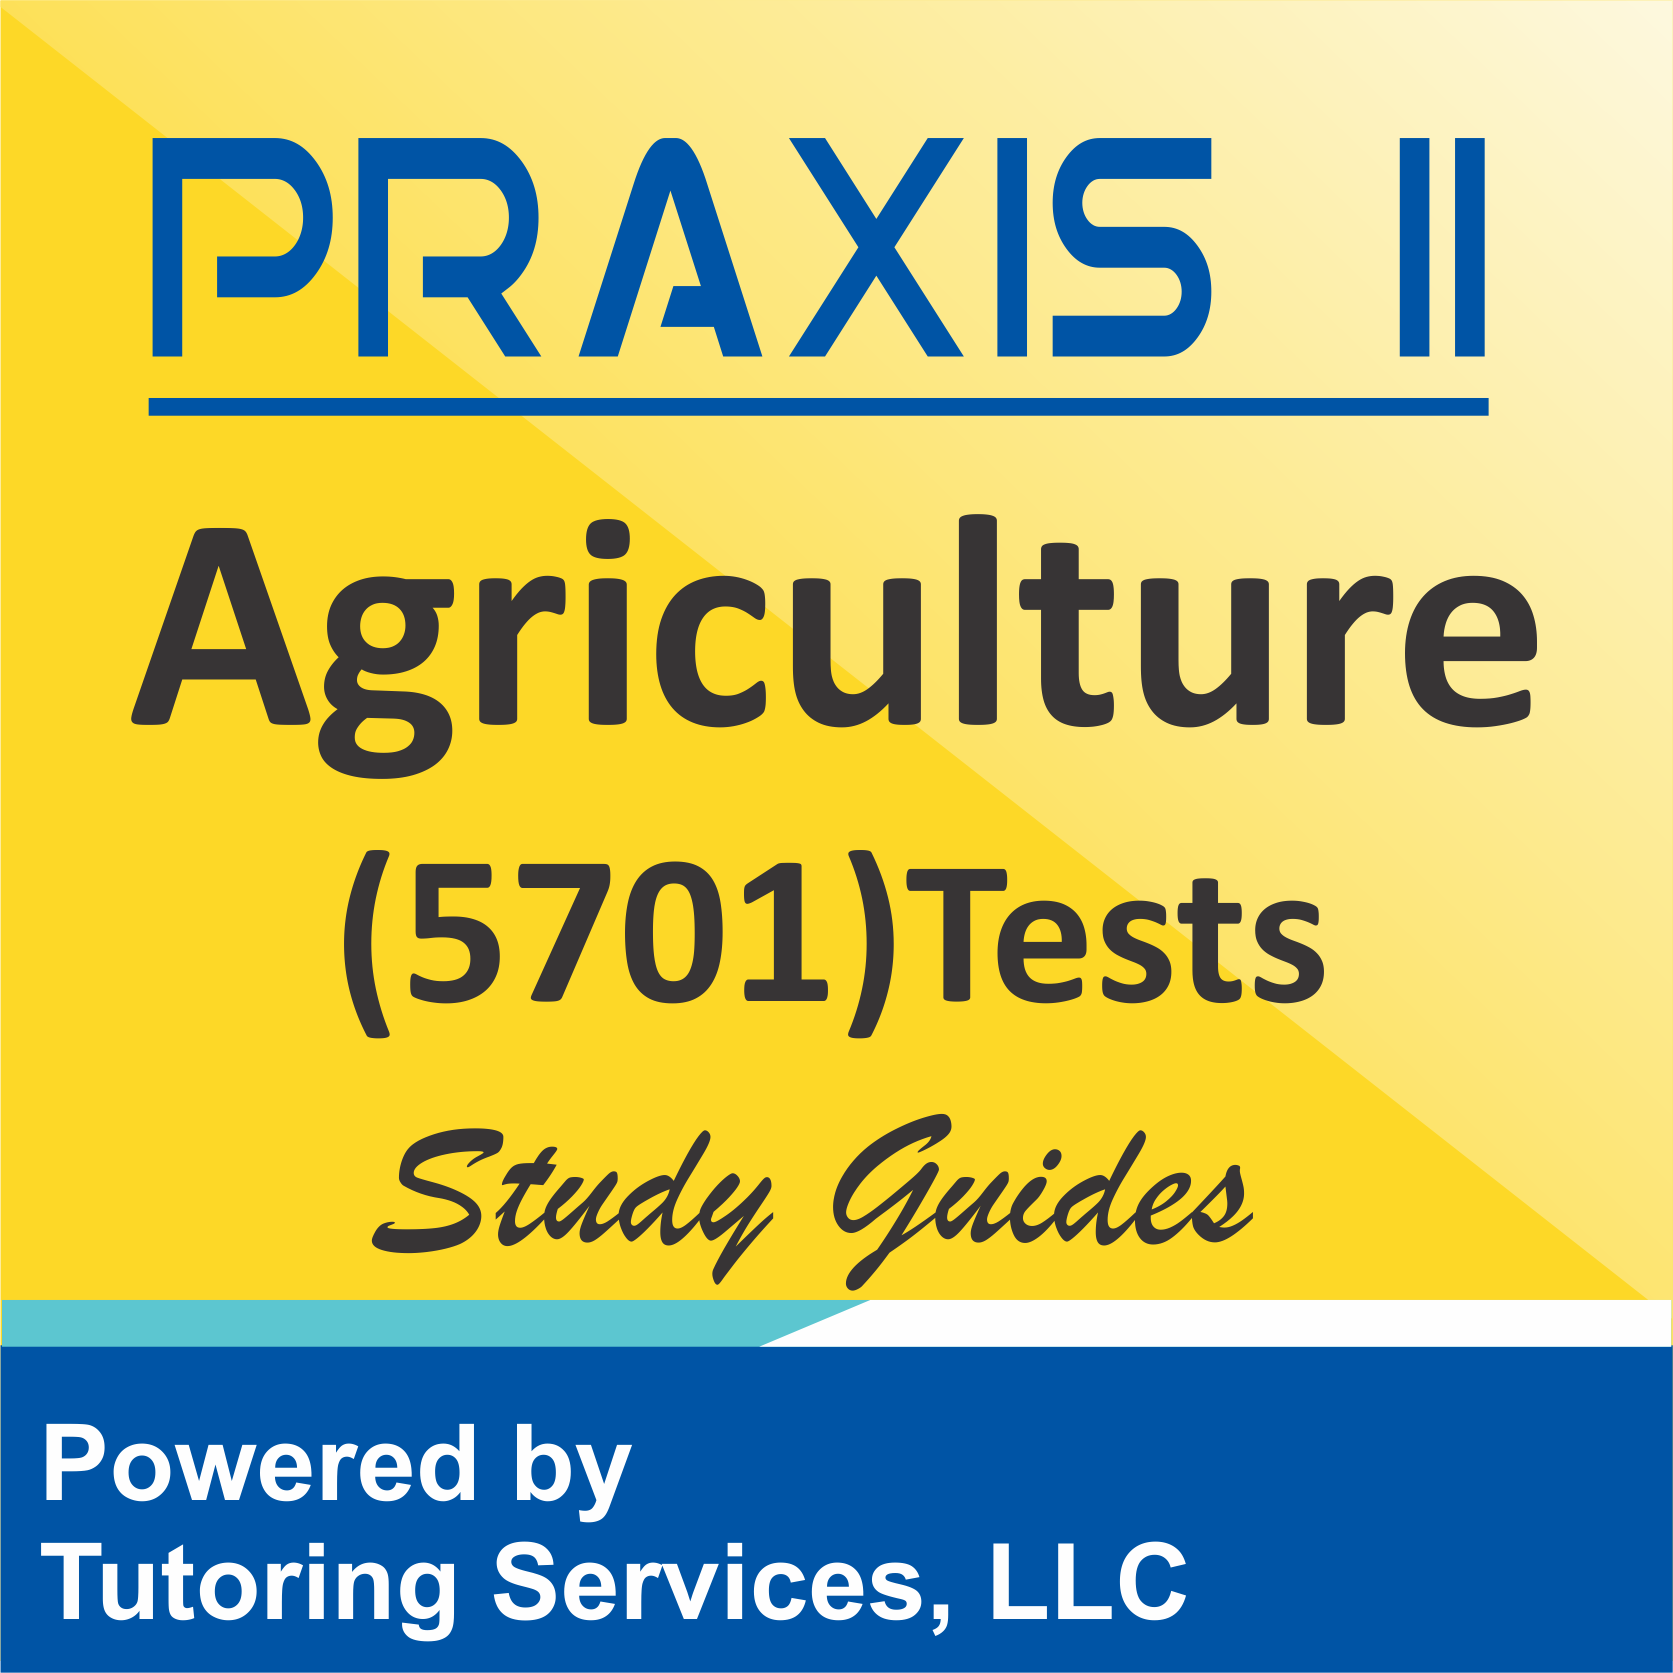 Praxis II Agriculture (5701) Examination Information